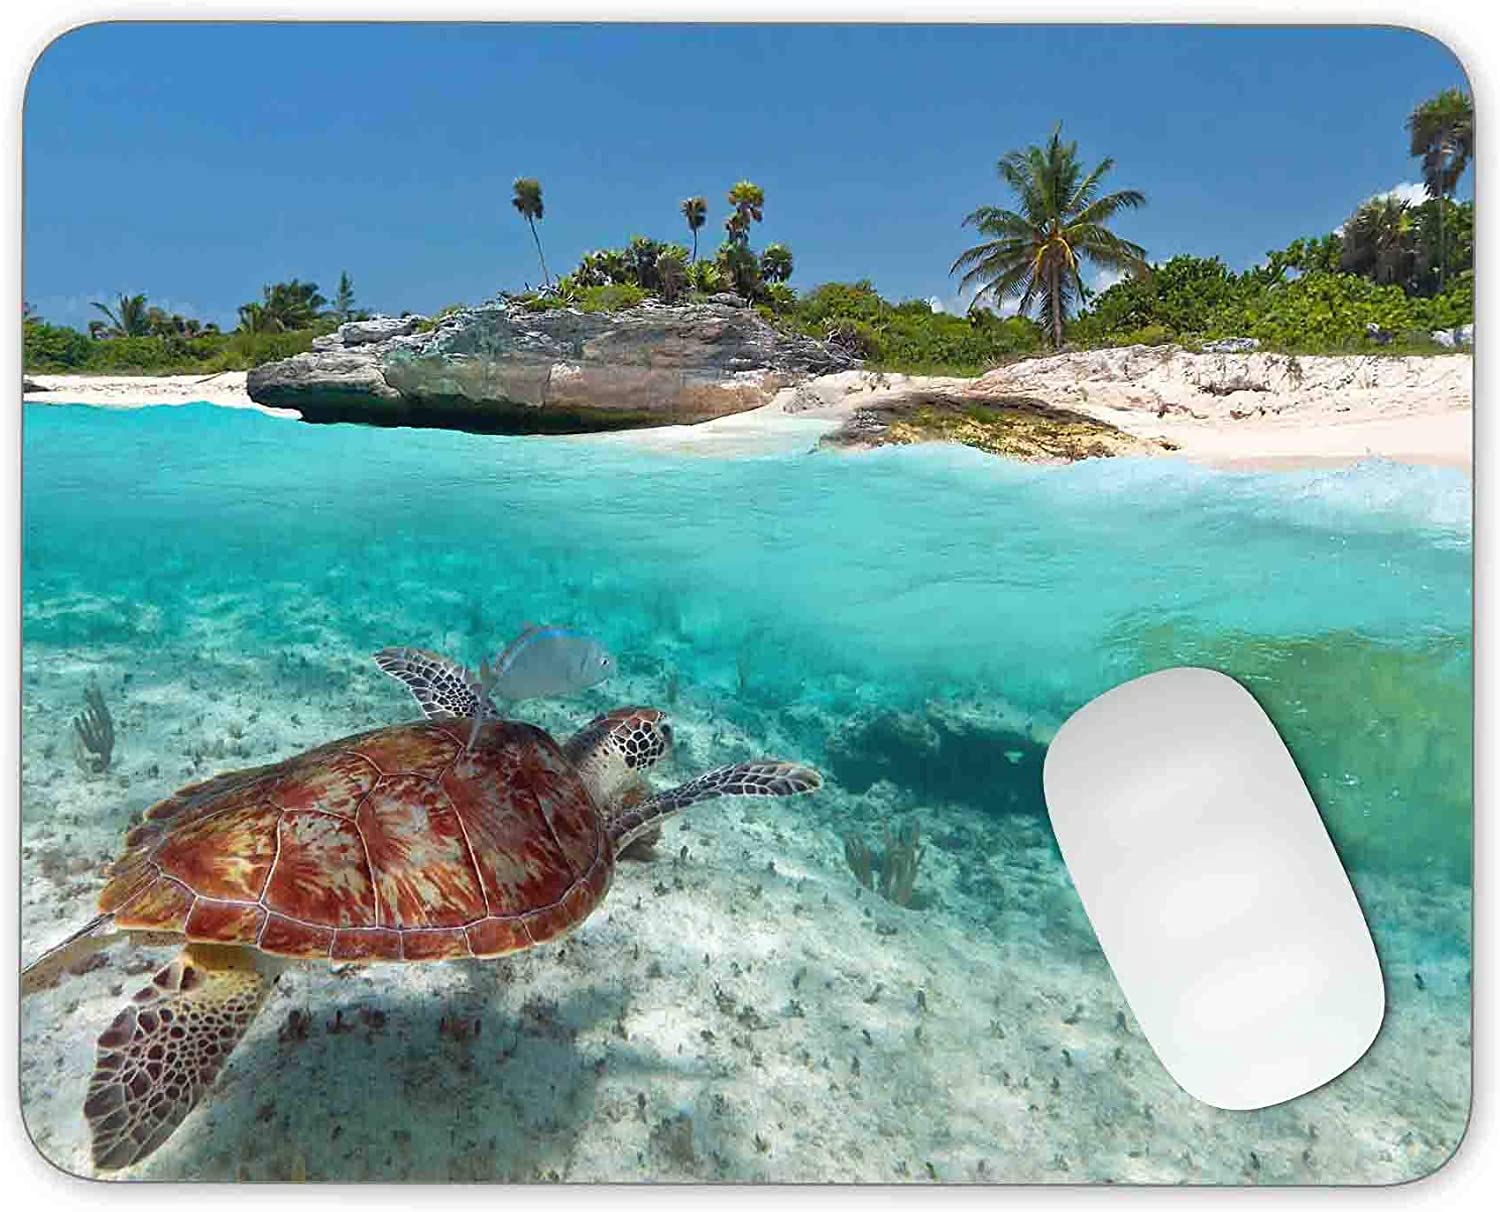 Timing/&weng Caribbean Sea Scenery with Green Turtle Mouse pad Gaming Mouse pad Mousepad Nonslip Rubber Backing